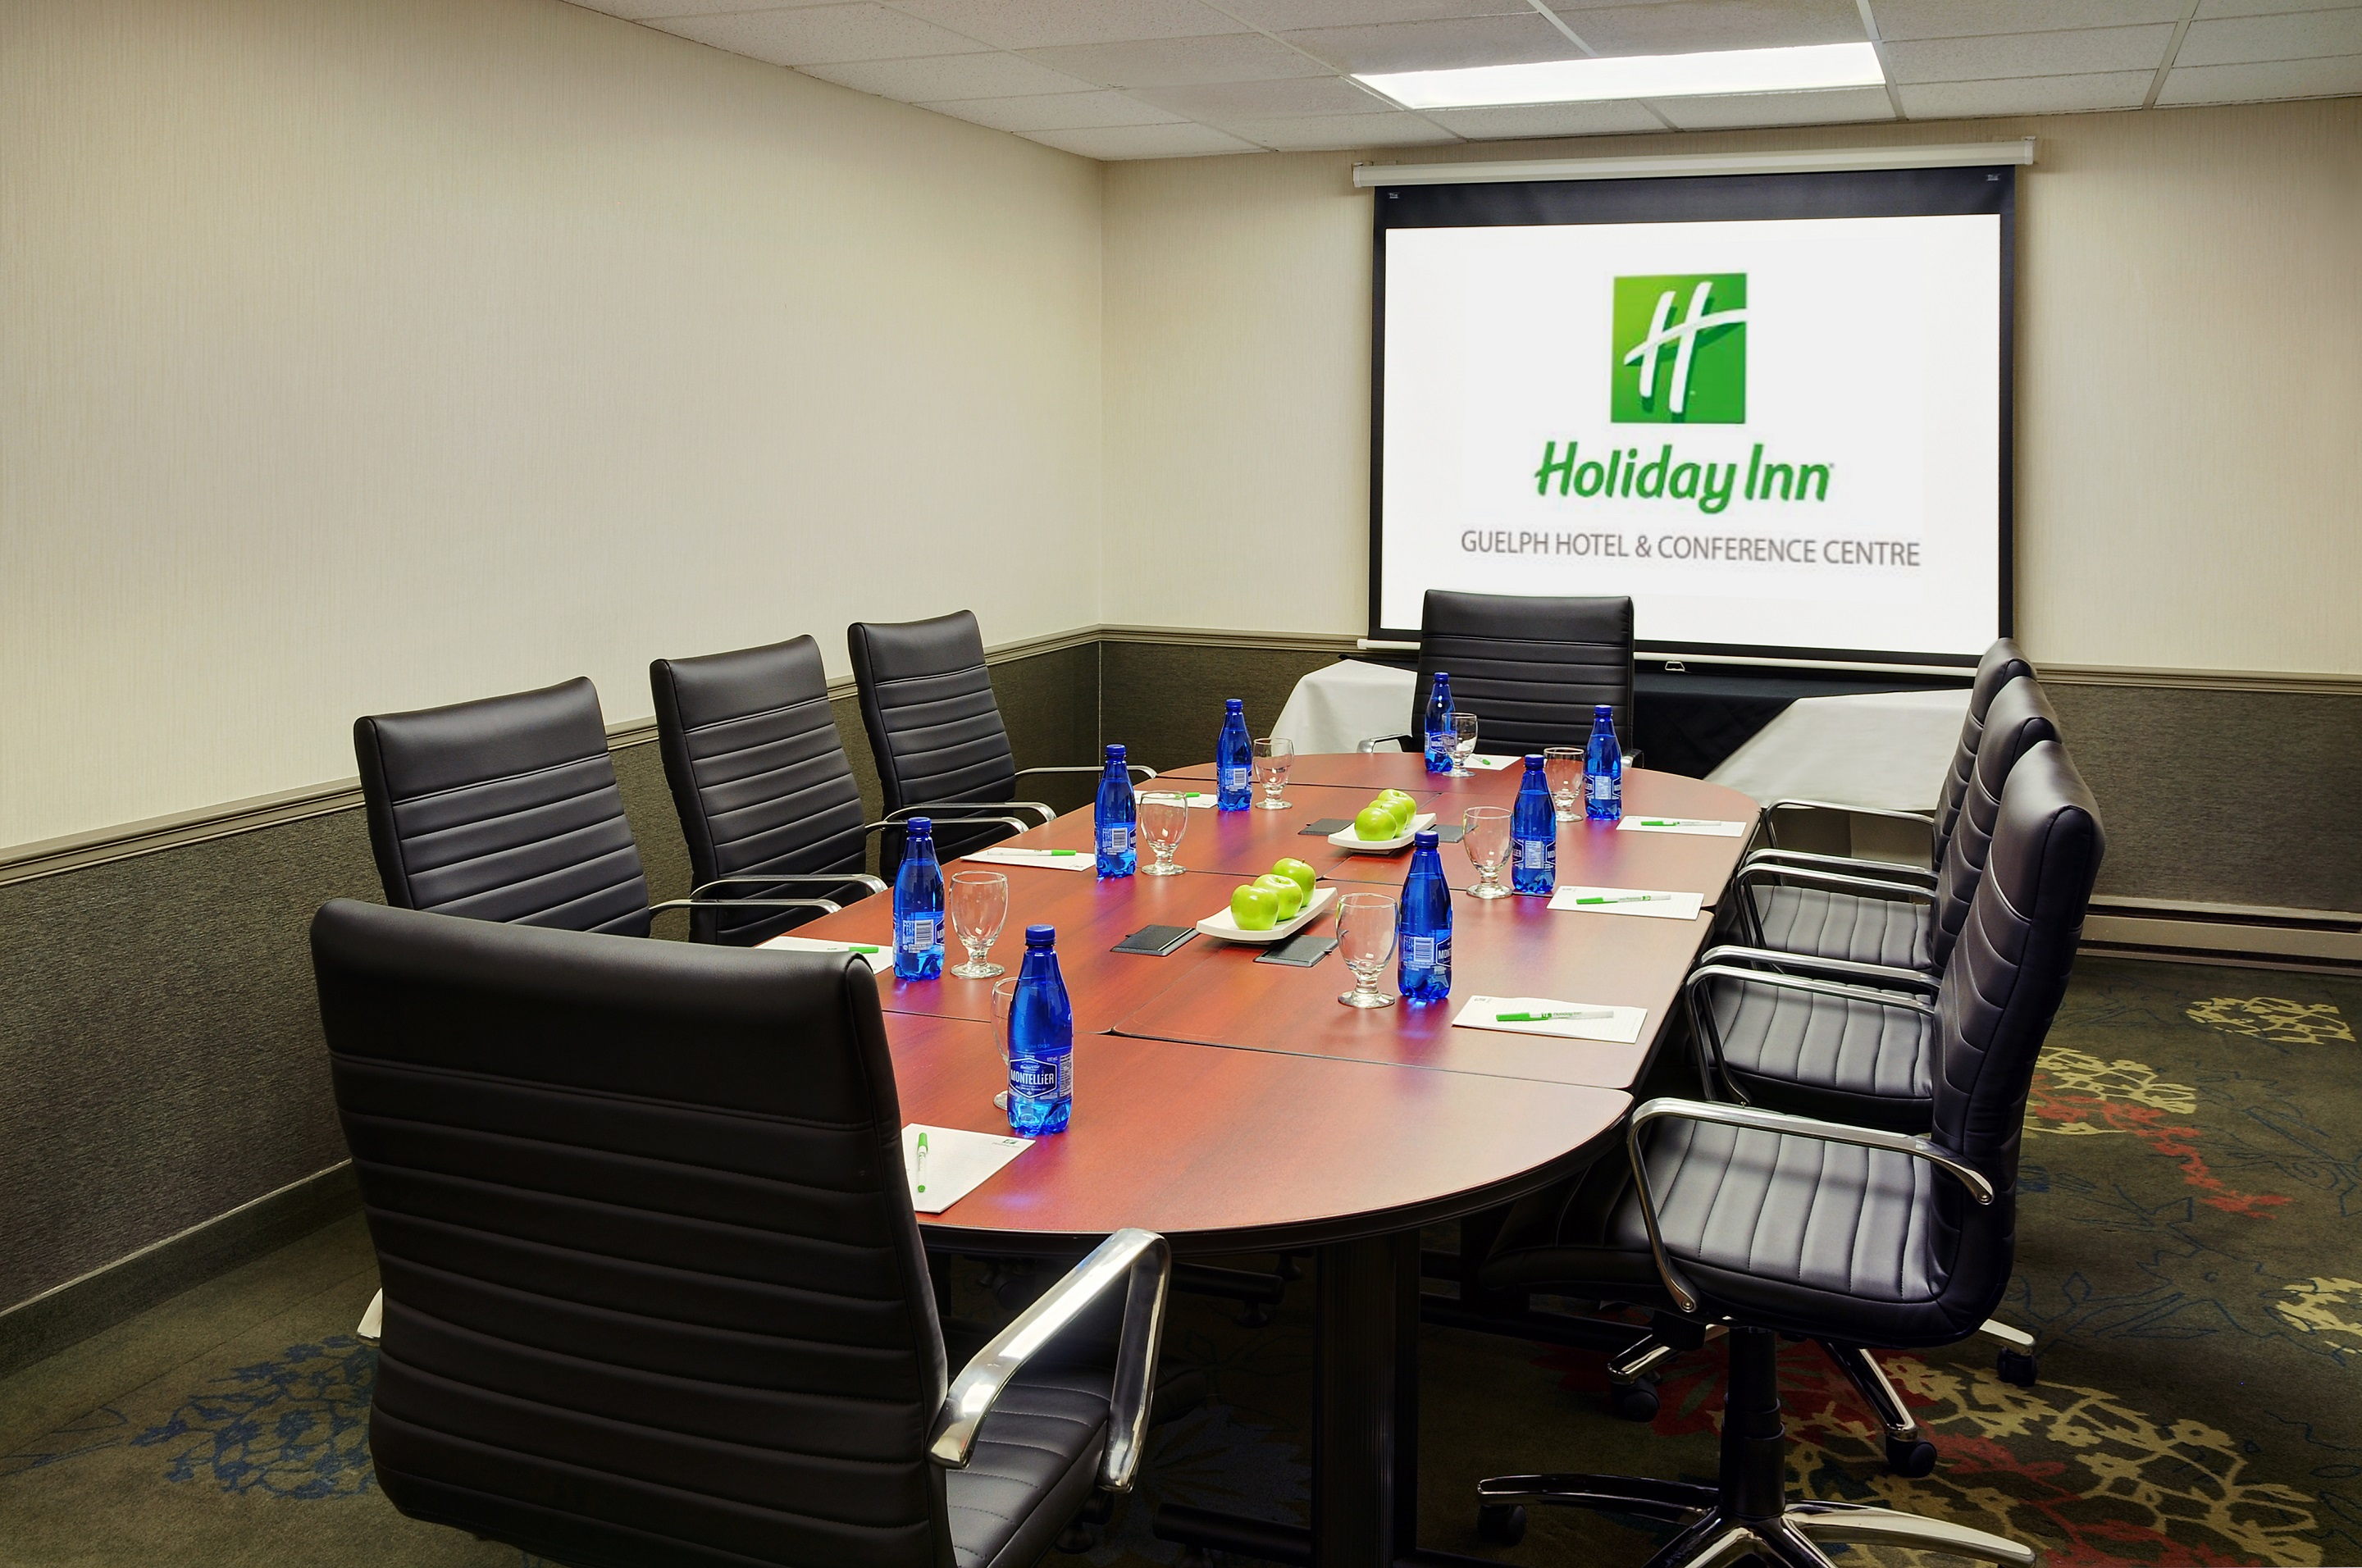 https://www.hotelsbyday.com/_data/default-hotel_image/0/4737/12-boardroom-1.jpg